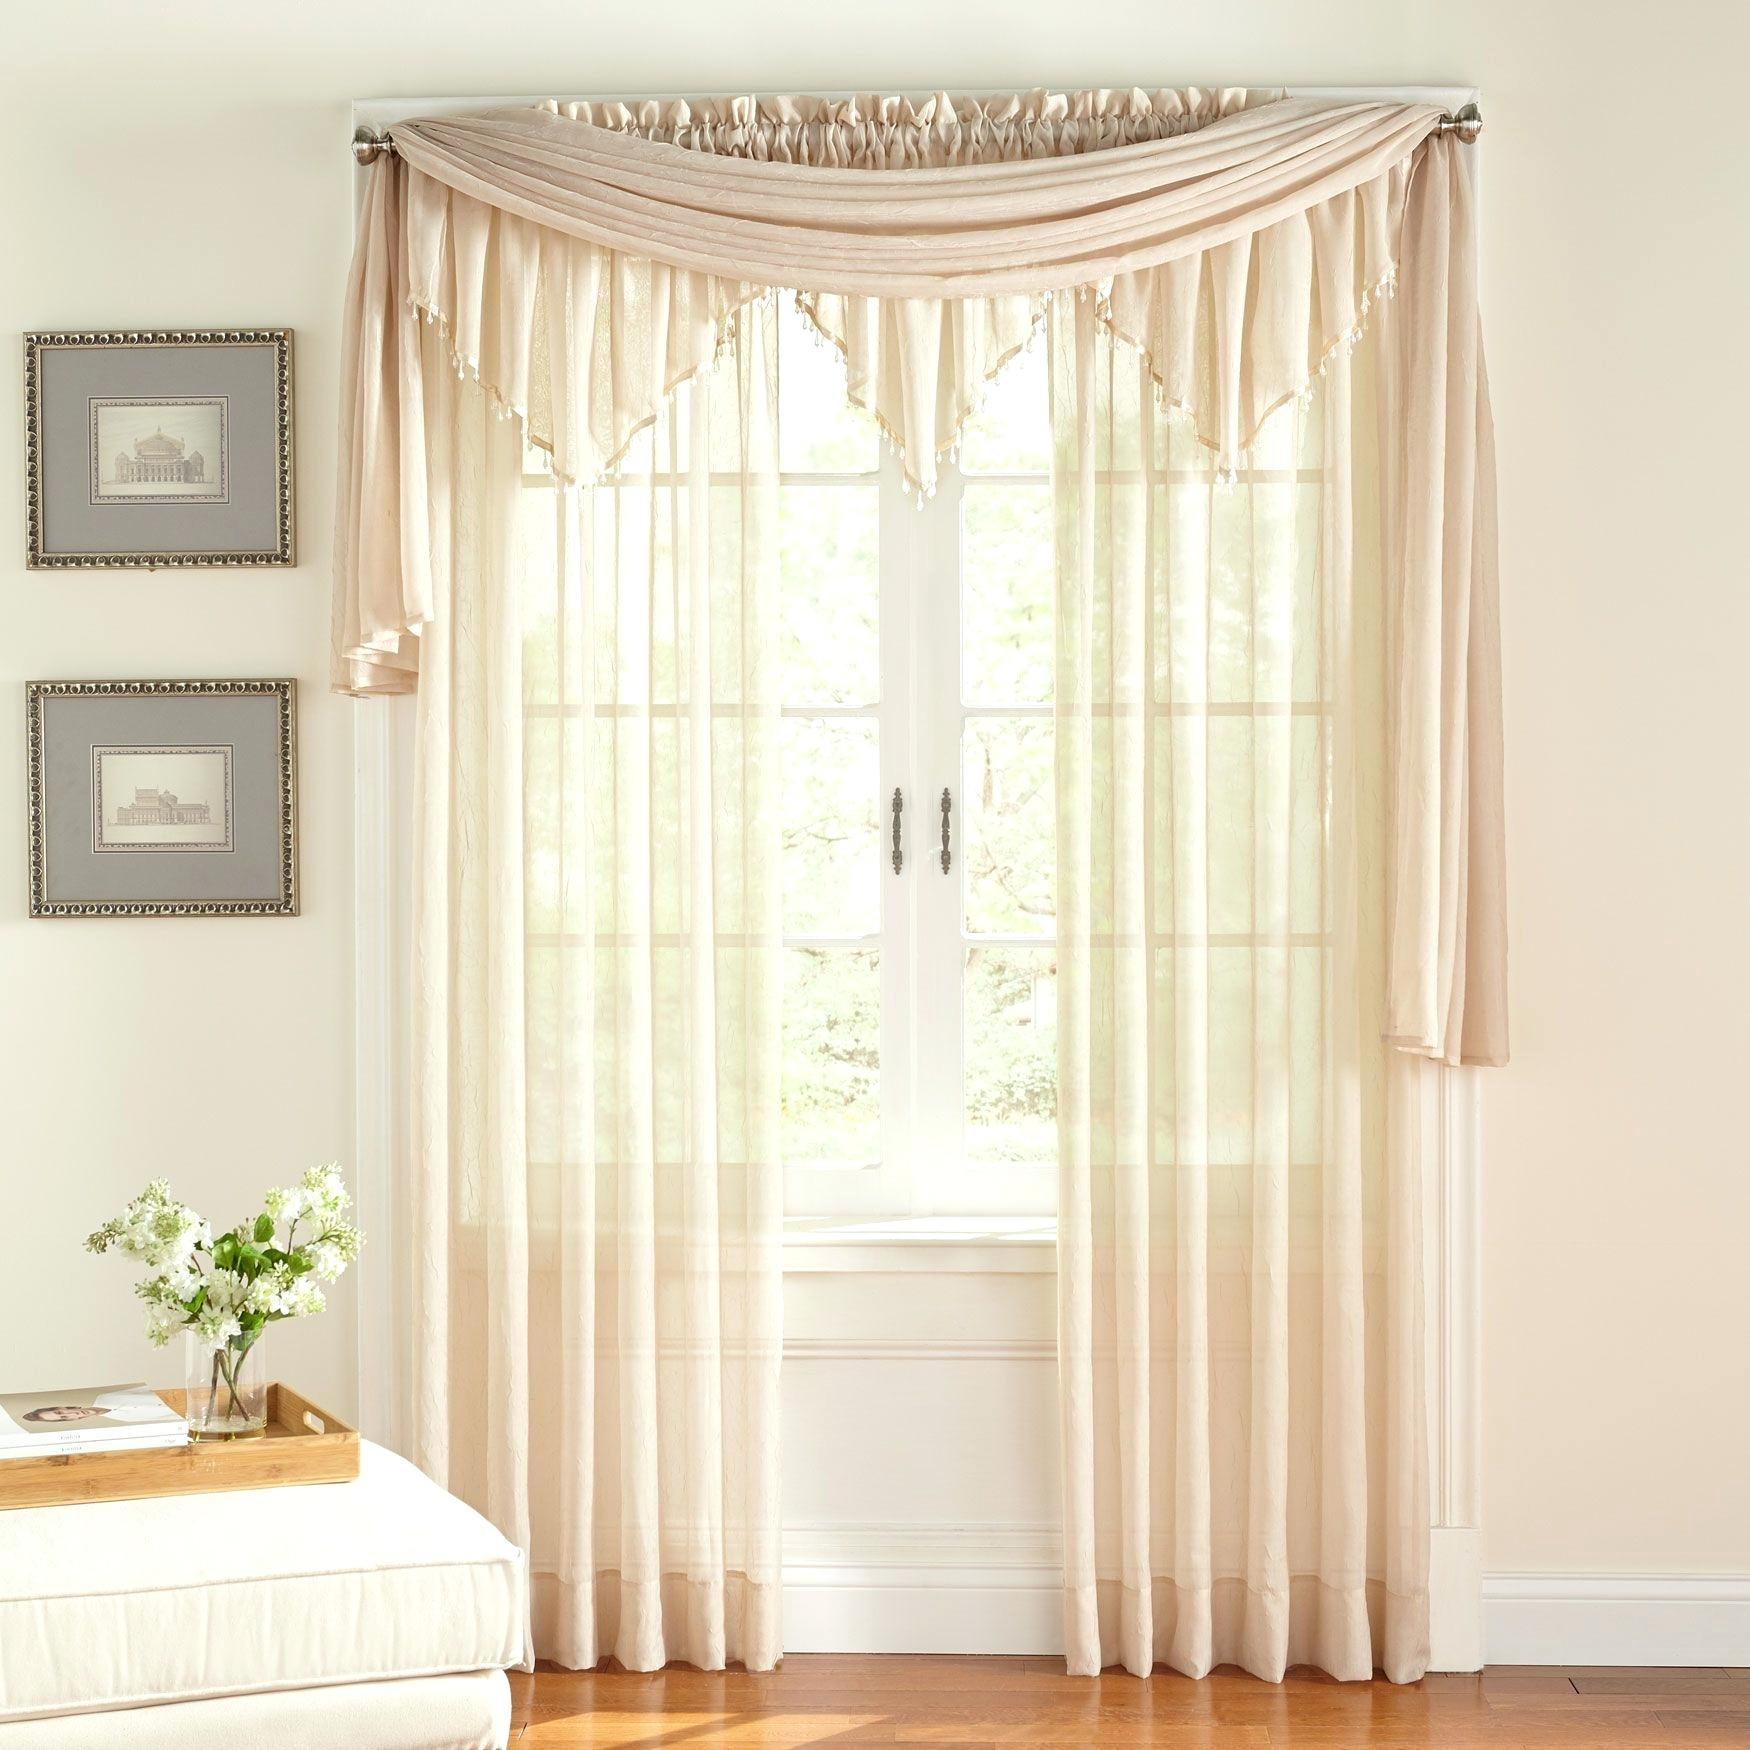 Crushed Voile Curtains – Wethepeopleoklahoma With Regard To Erica Crushed Sheer Voile Grommet Curtain Panels (View 18 of 20)